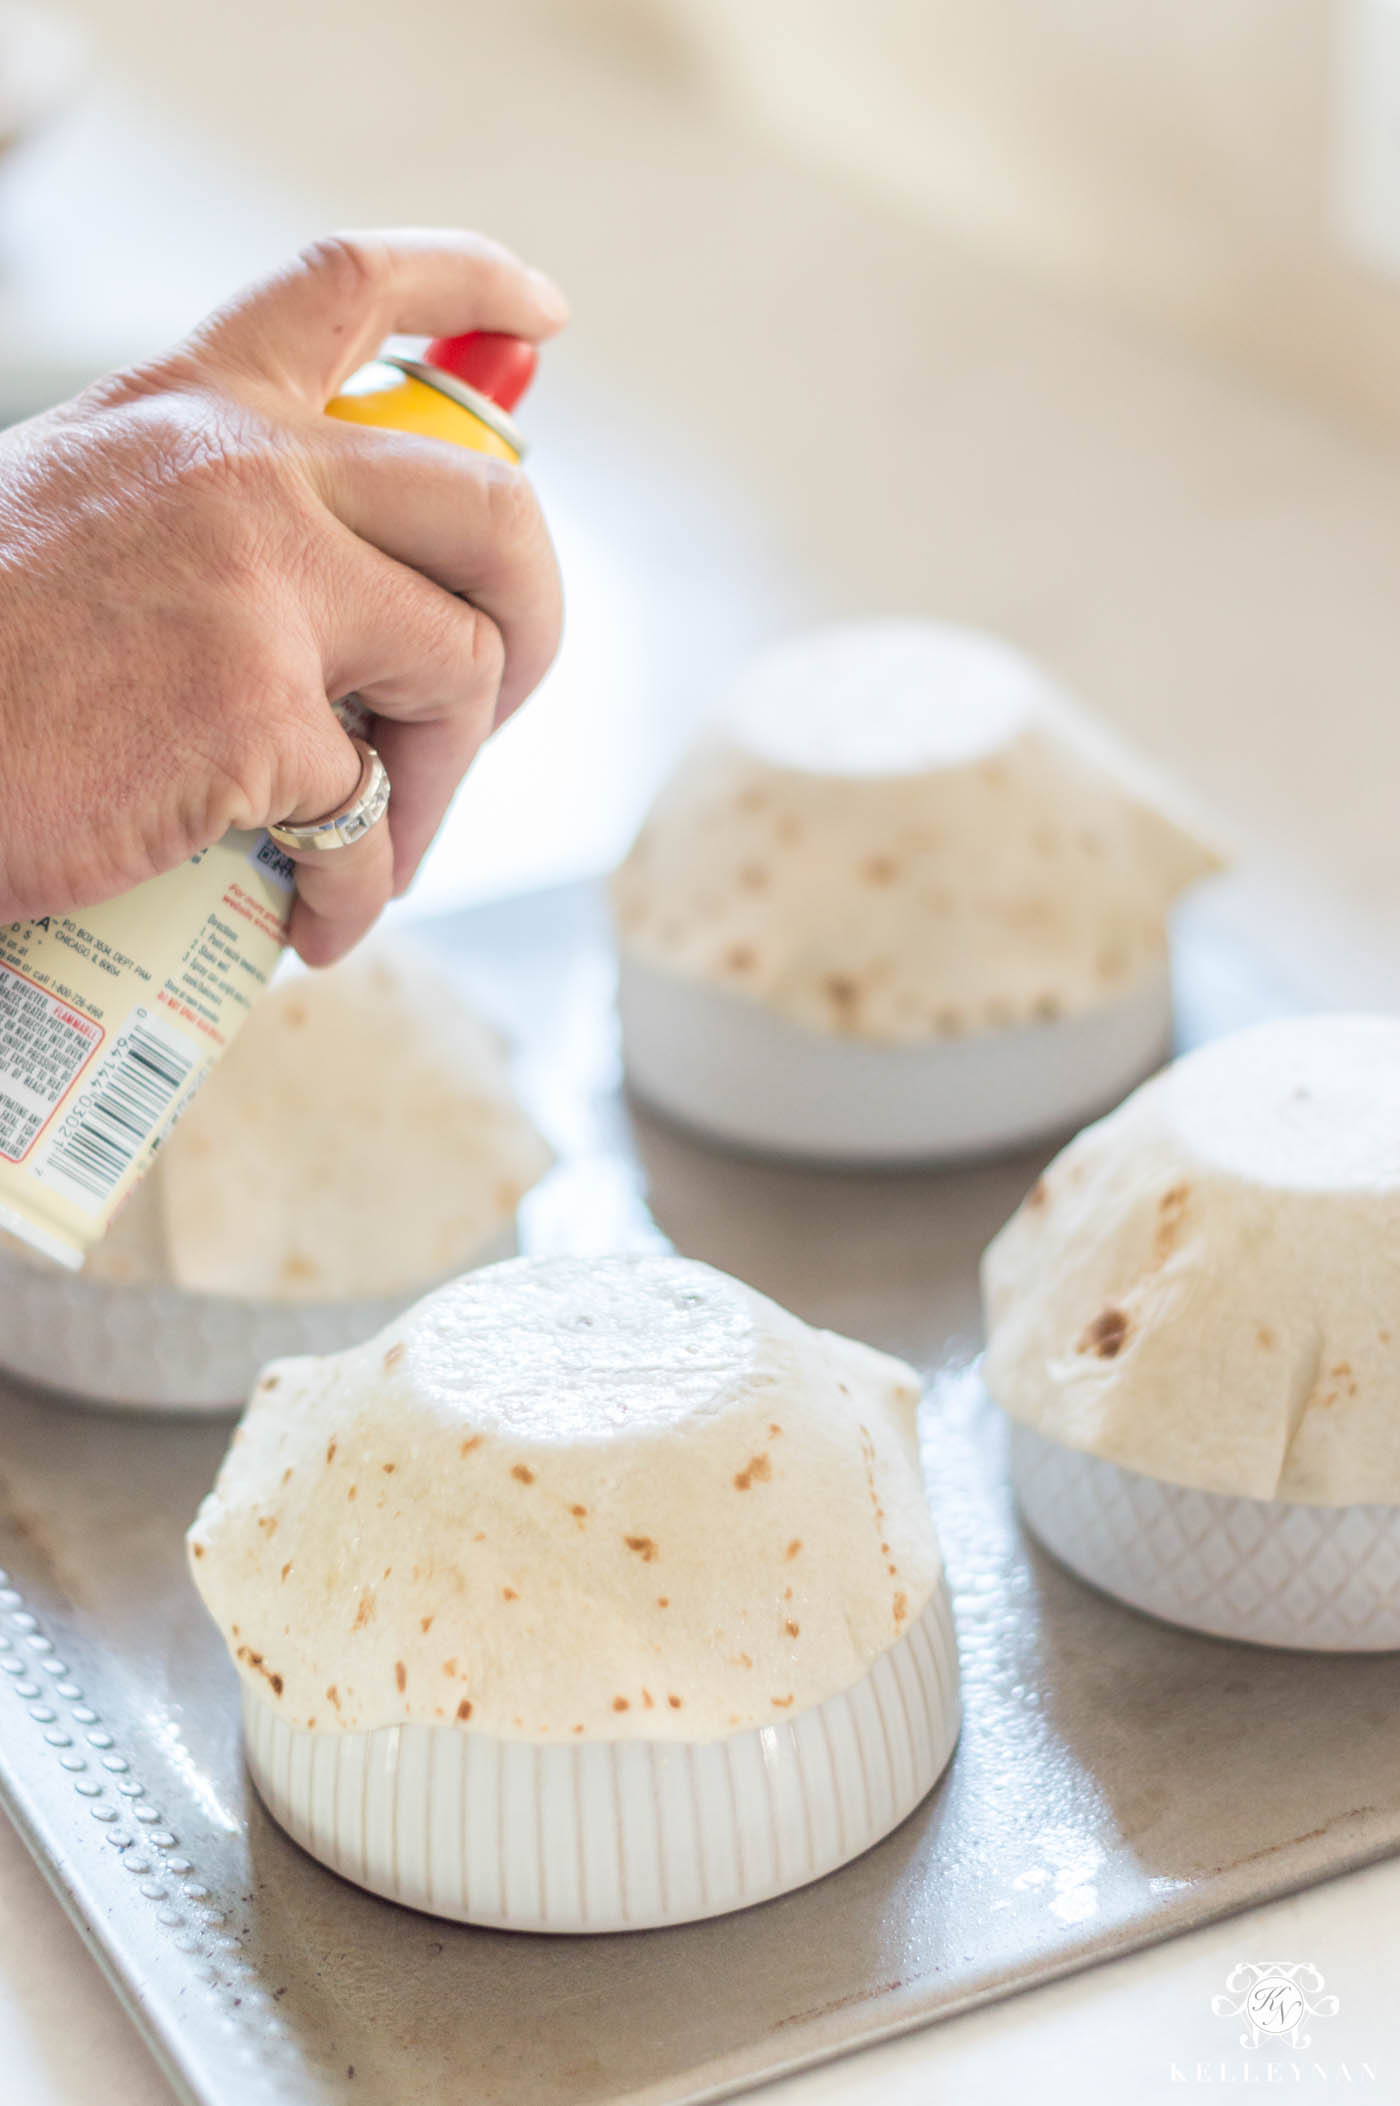 How to bake flour tortillas for taco salad shells